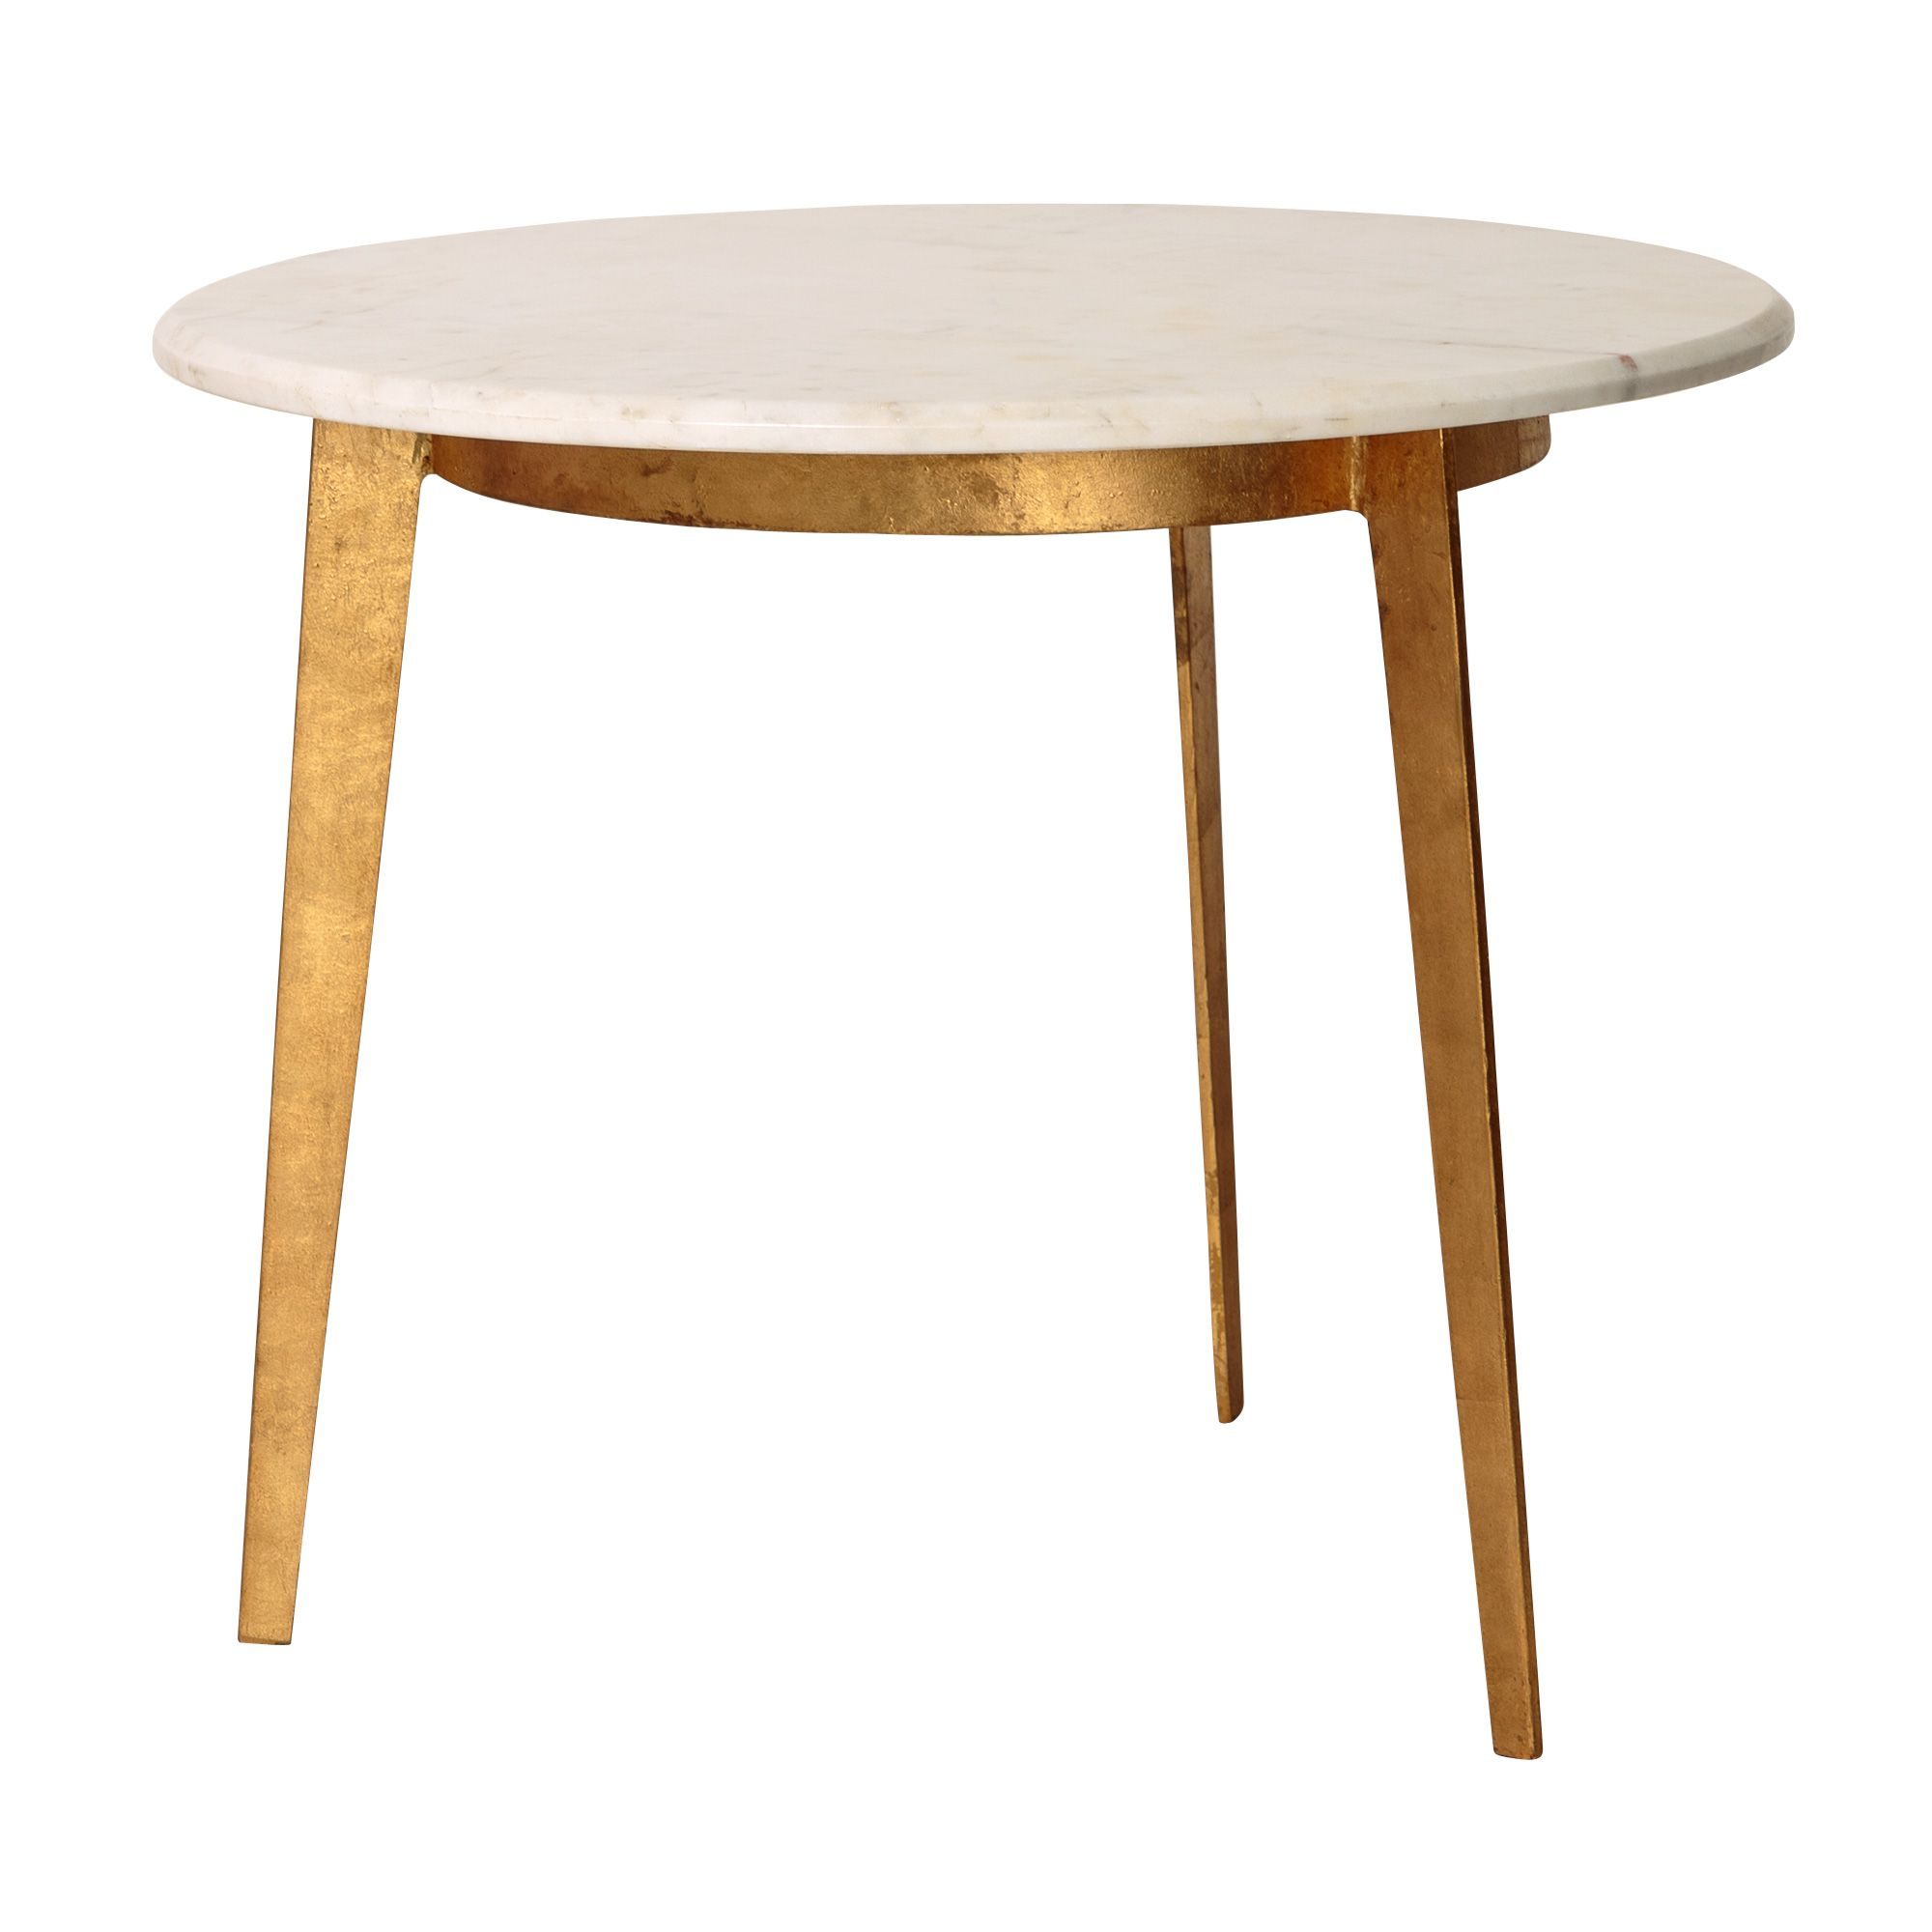 Marble Coffee Table Oliver Bonas: Pretty Things For My House